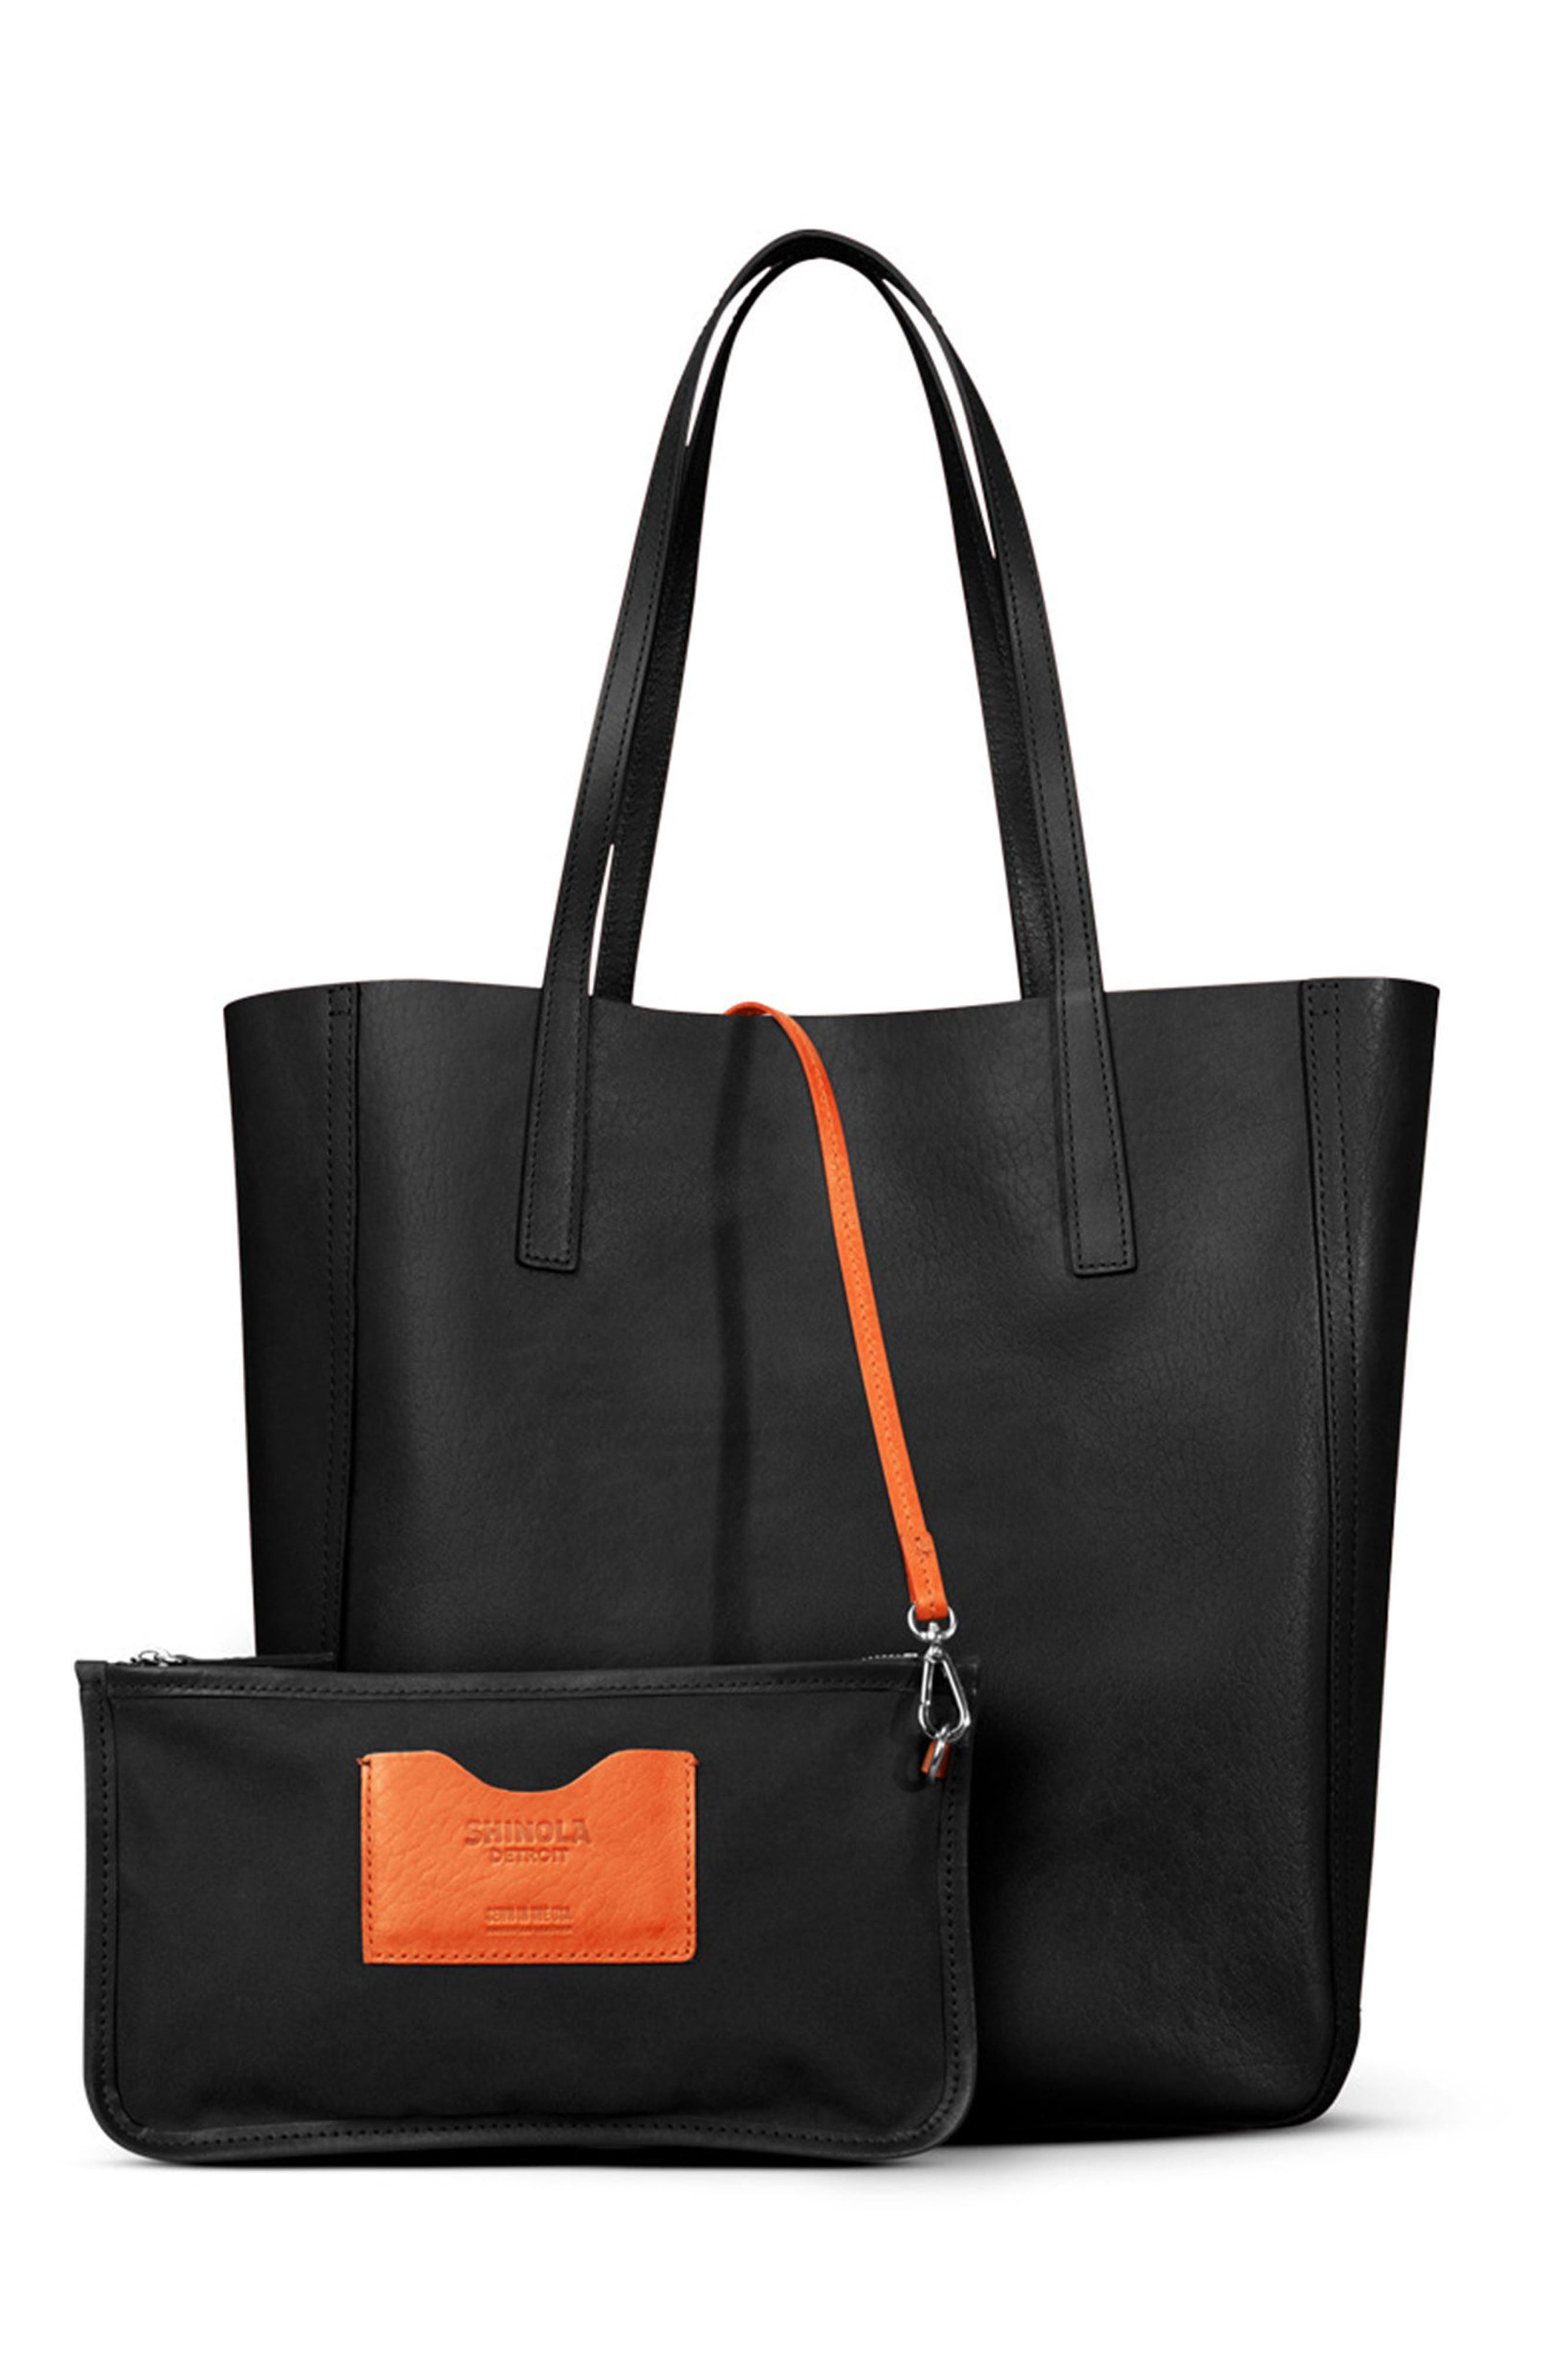 Medium Leather Shopper,                             Main thumbnail 1, color,                             BLACK